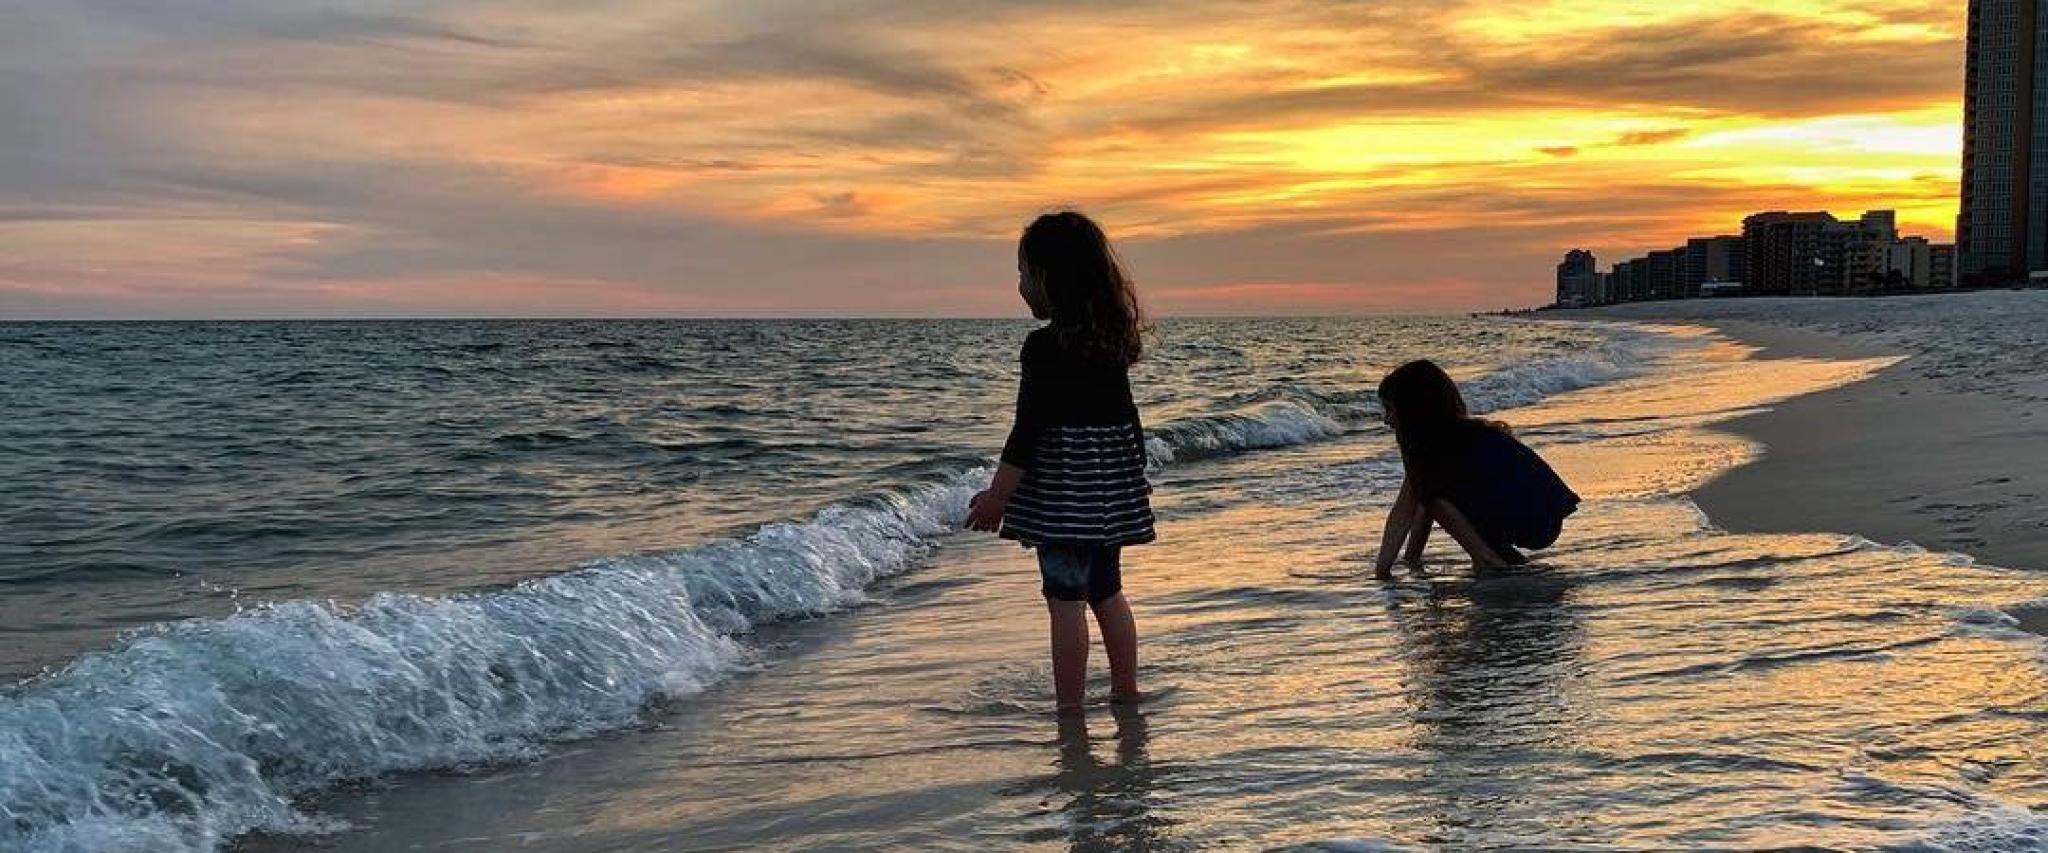 Sisters playing on the beach at sunset Orange Beach, AL